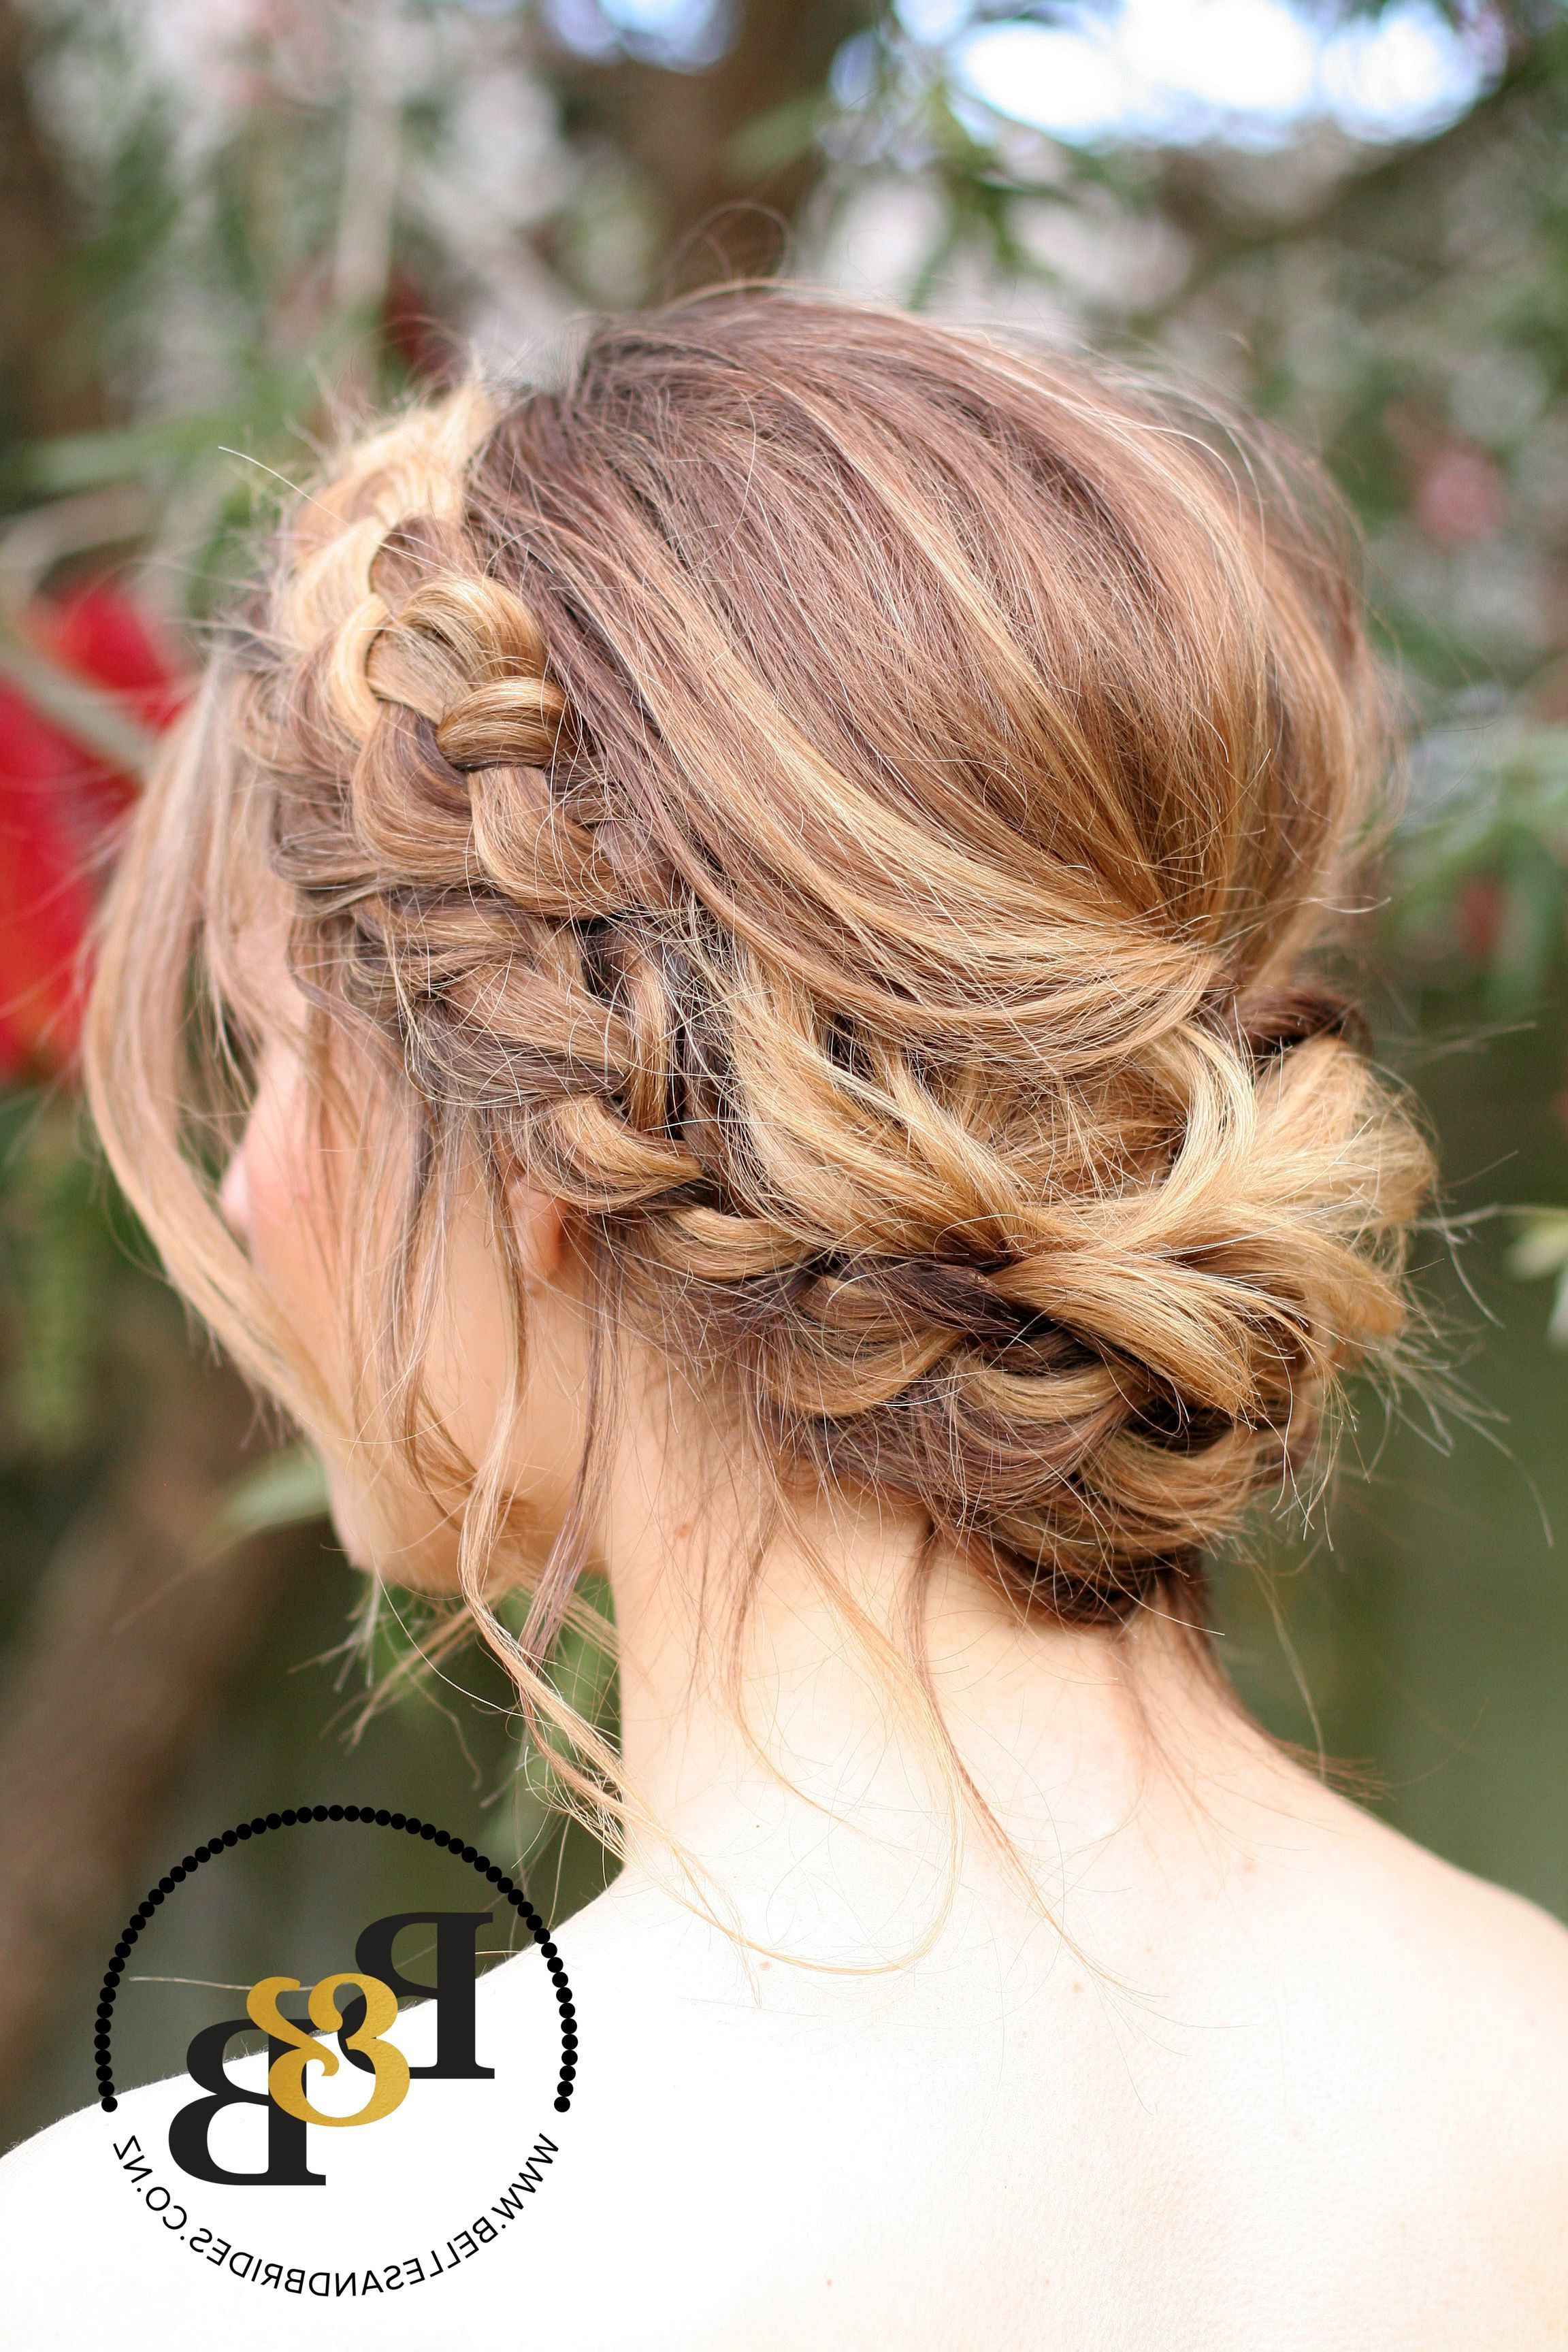 Hairstyles : Chic Braided Chignon Superb Wedding Hair With Intended For Trendy Braided Chignon Bun Hairstyles (Gallery 7 of 20)